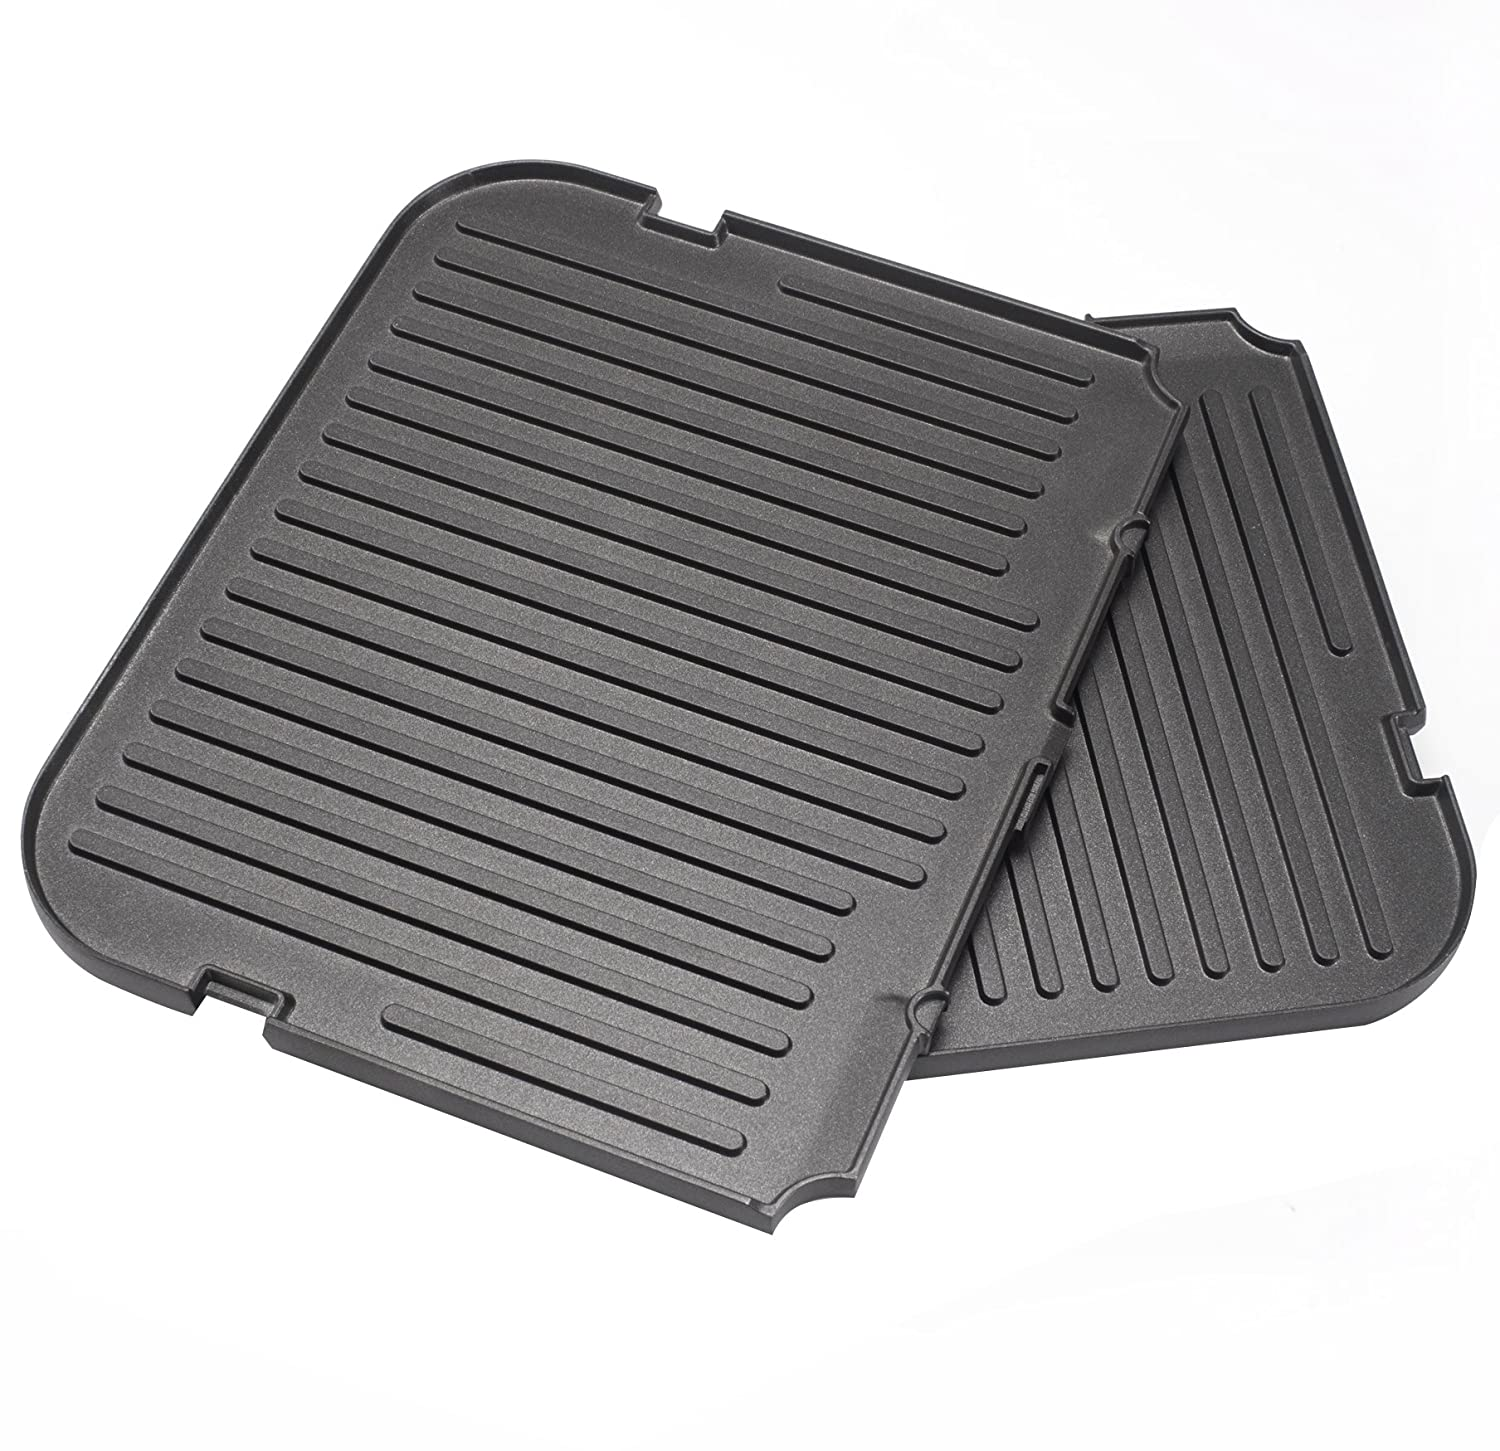 UsKitchen Reversible Grill/Griddle Plate for Cuisinart Griddler GR-4N 5-in-1